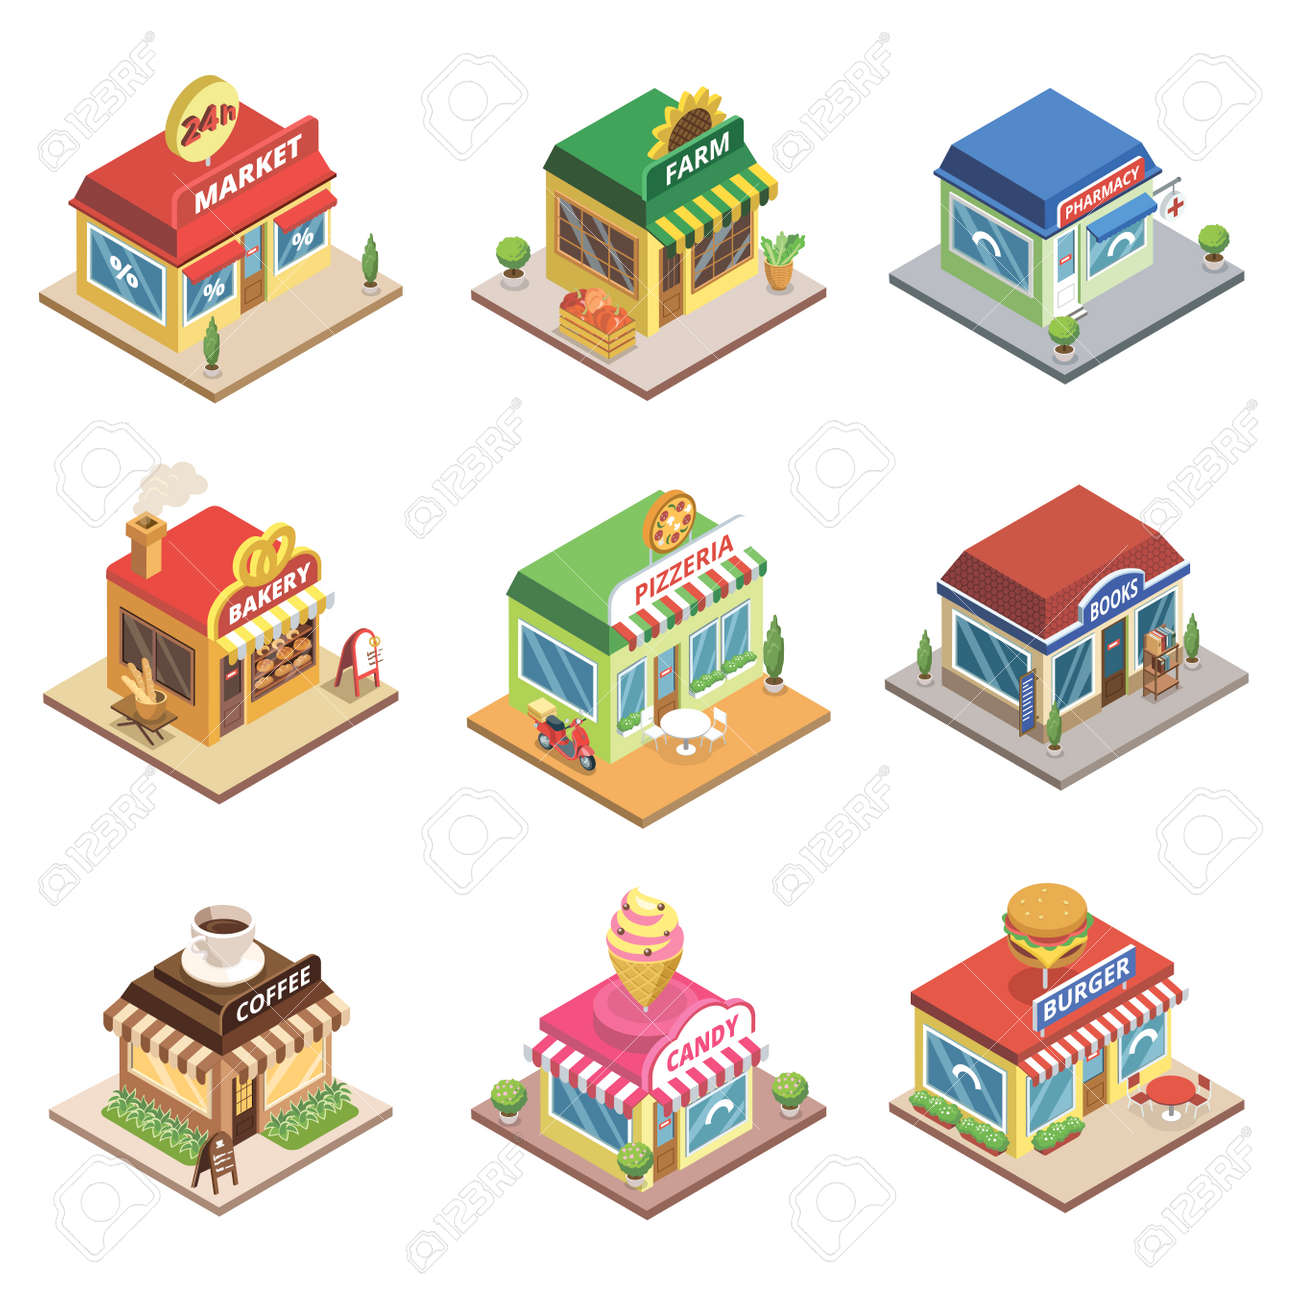 Fast food restaurant and shop buildings - 113332800